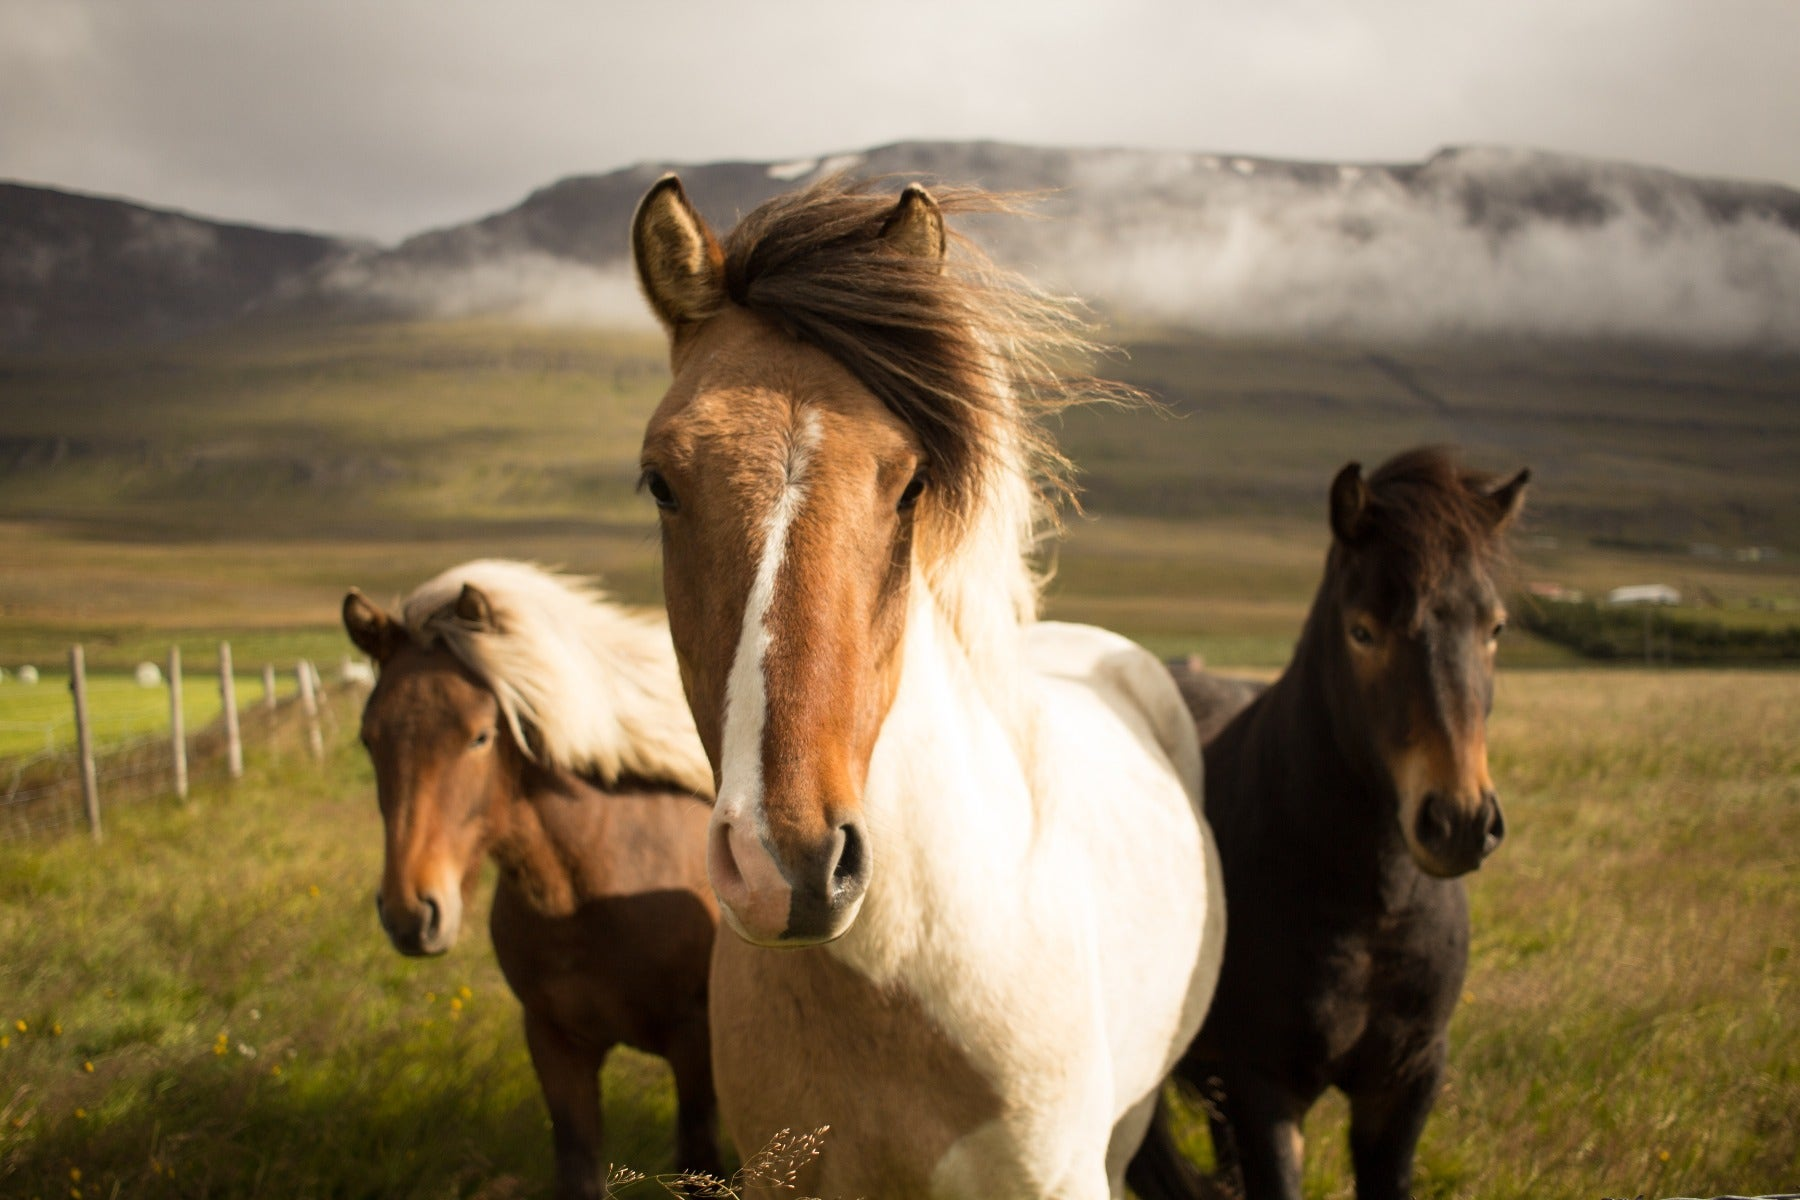 Horses with a Wide Angle Lens